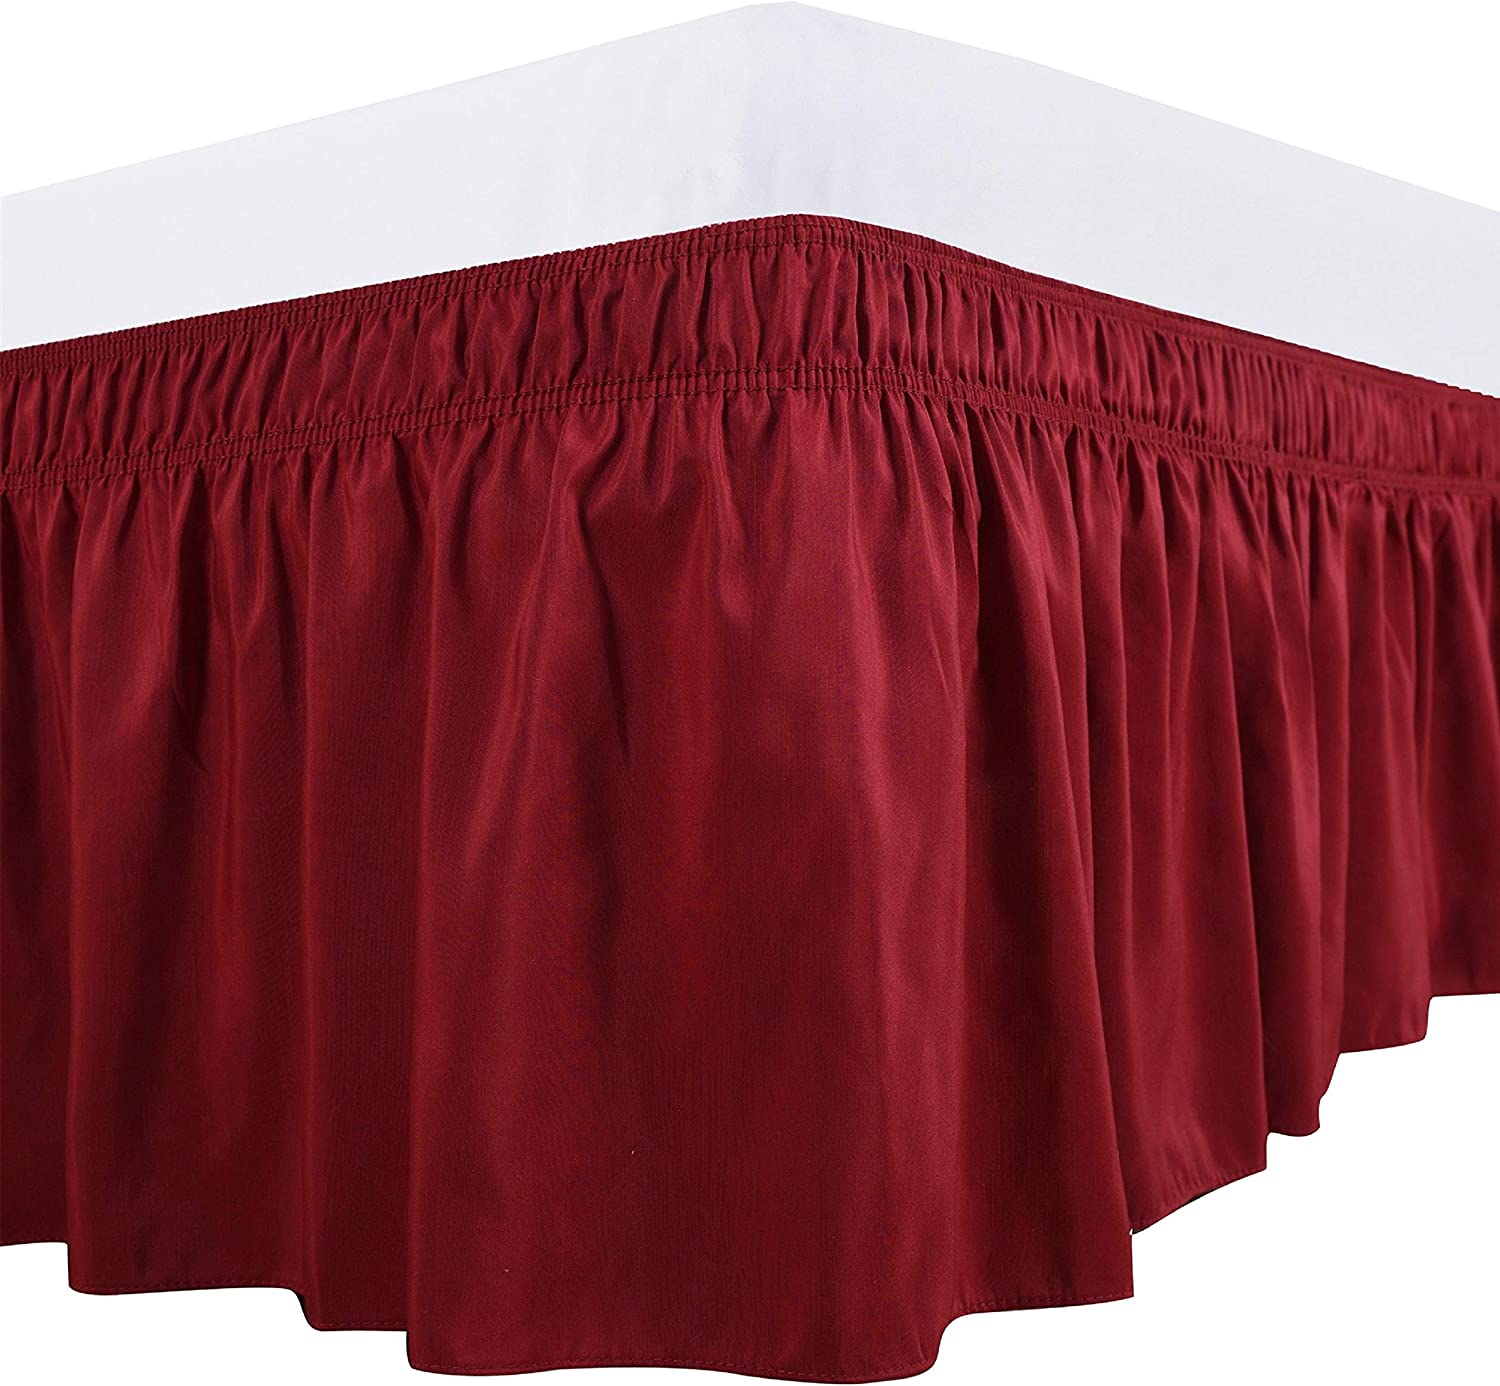 Biscaynebay Wrap Around Bed Skirts Elastic Dust Ruffles, Easy Fit Wrinkle and Fade Resistant Silky Luxrious Fabric Solid Color, Red for for Full, Full XL, Twin and Twin XL Size Beds 15 Inches Drop